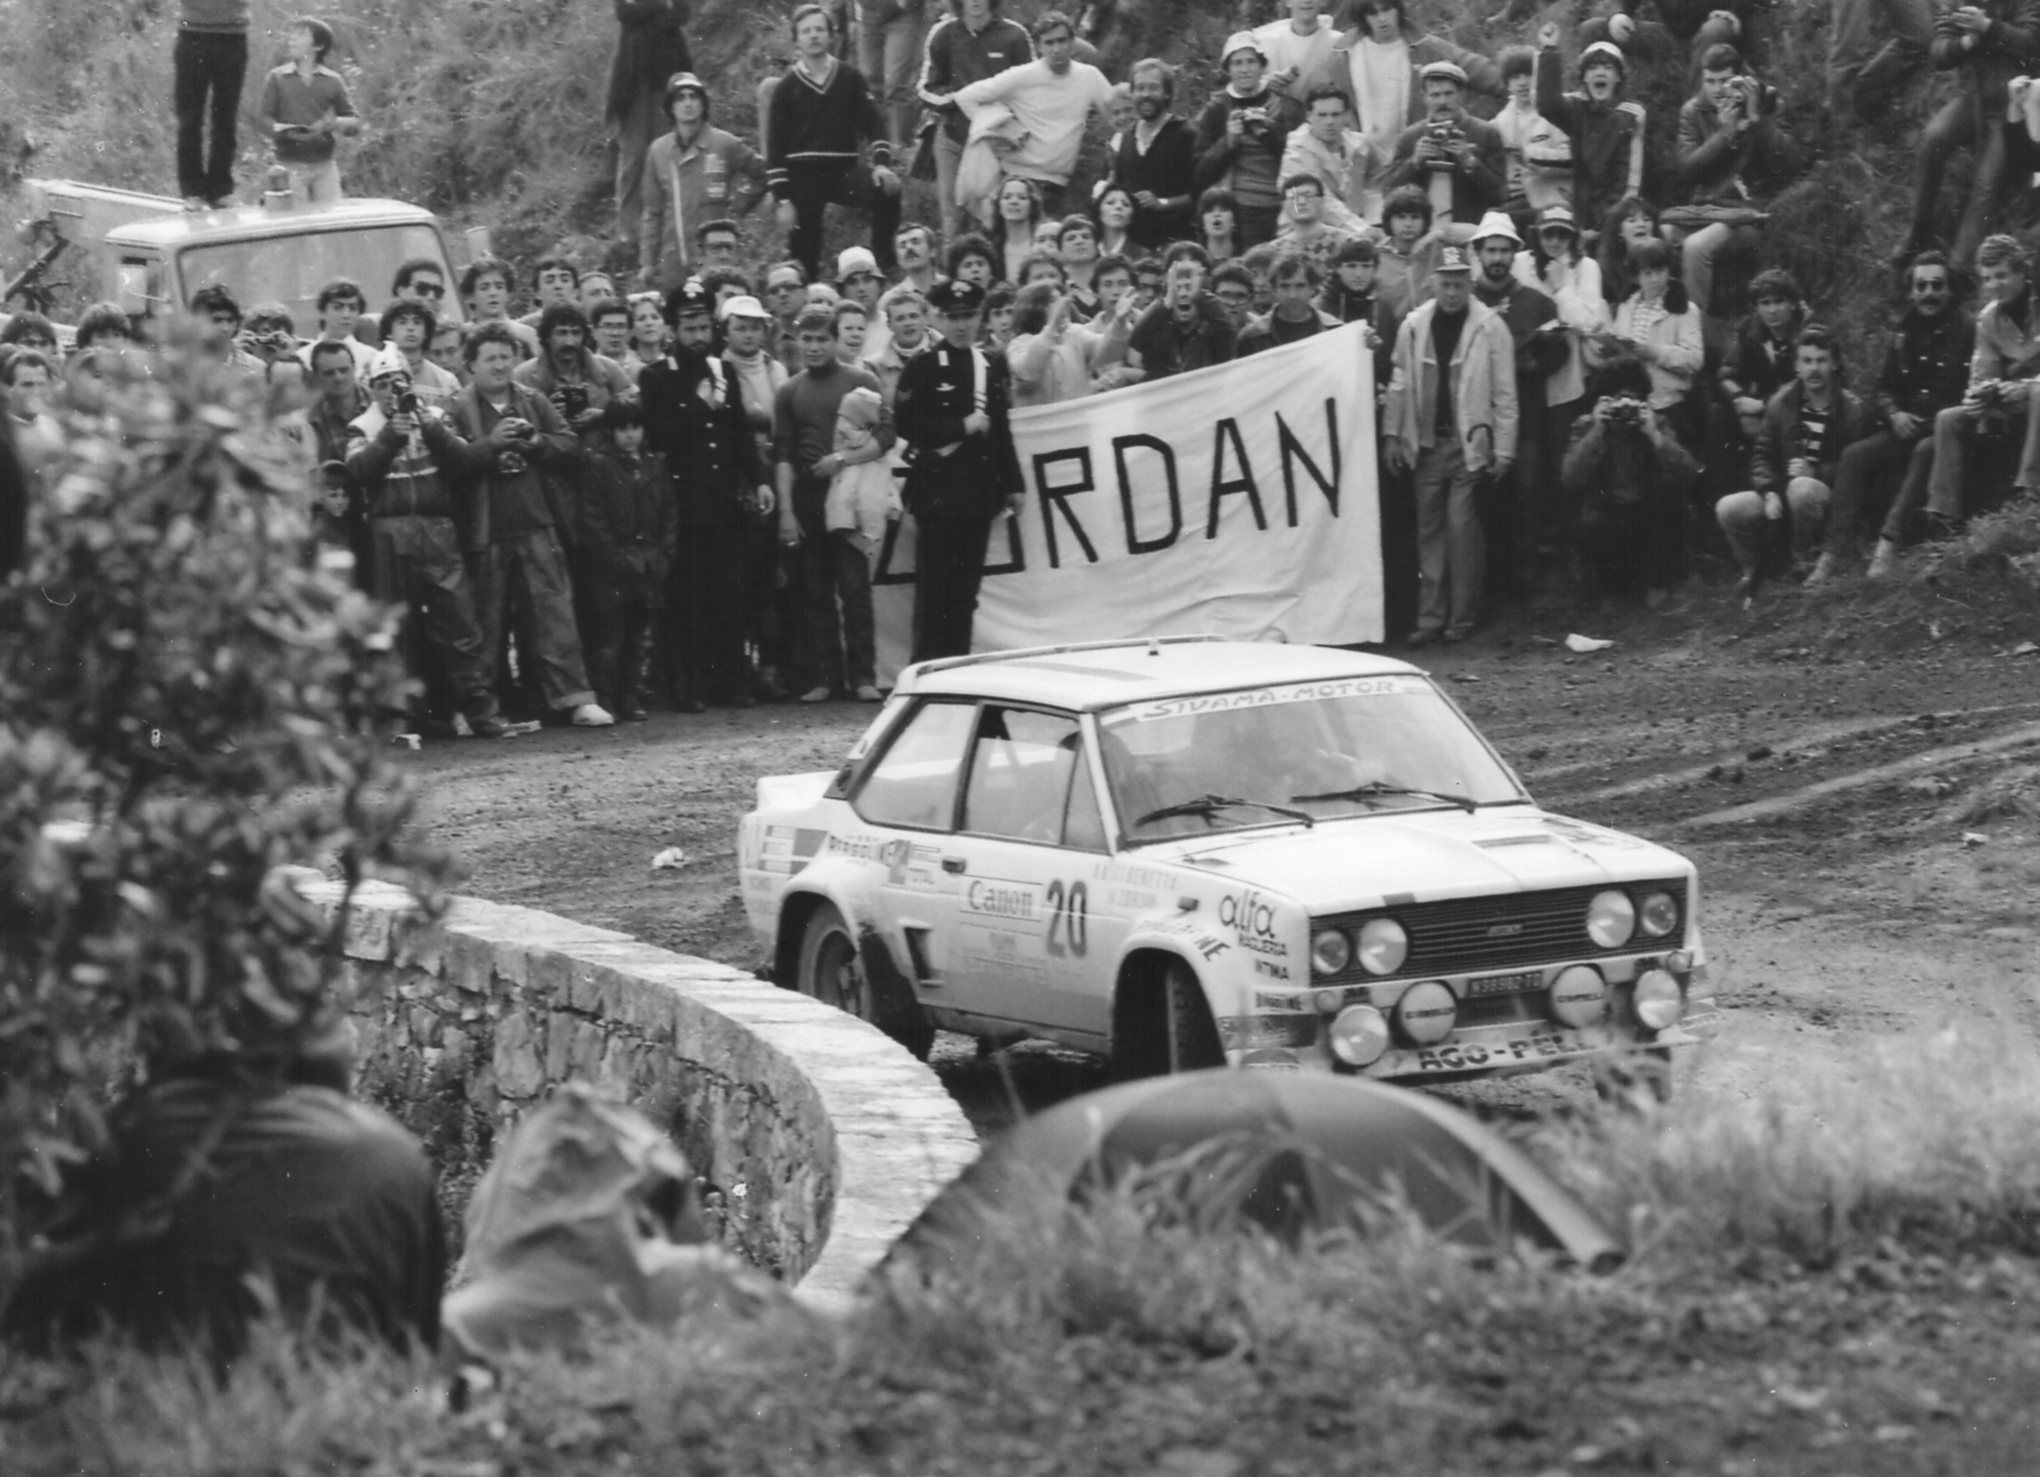 Antonillo Zordan In A Fiat 131 Abarth During Rallye Dell Isola D